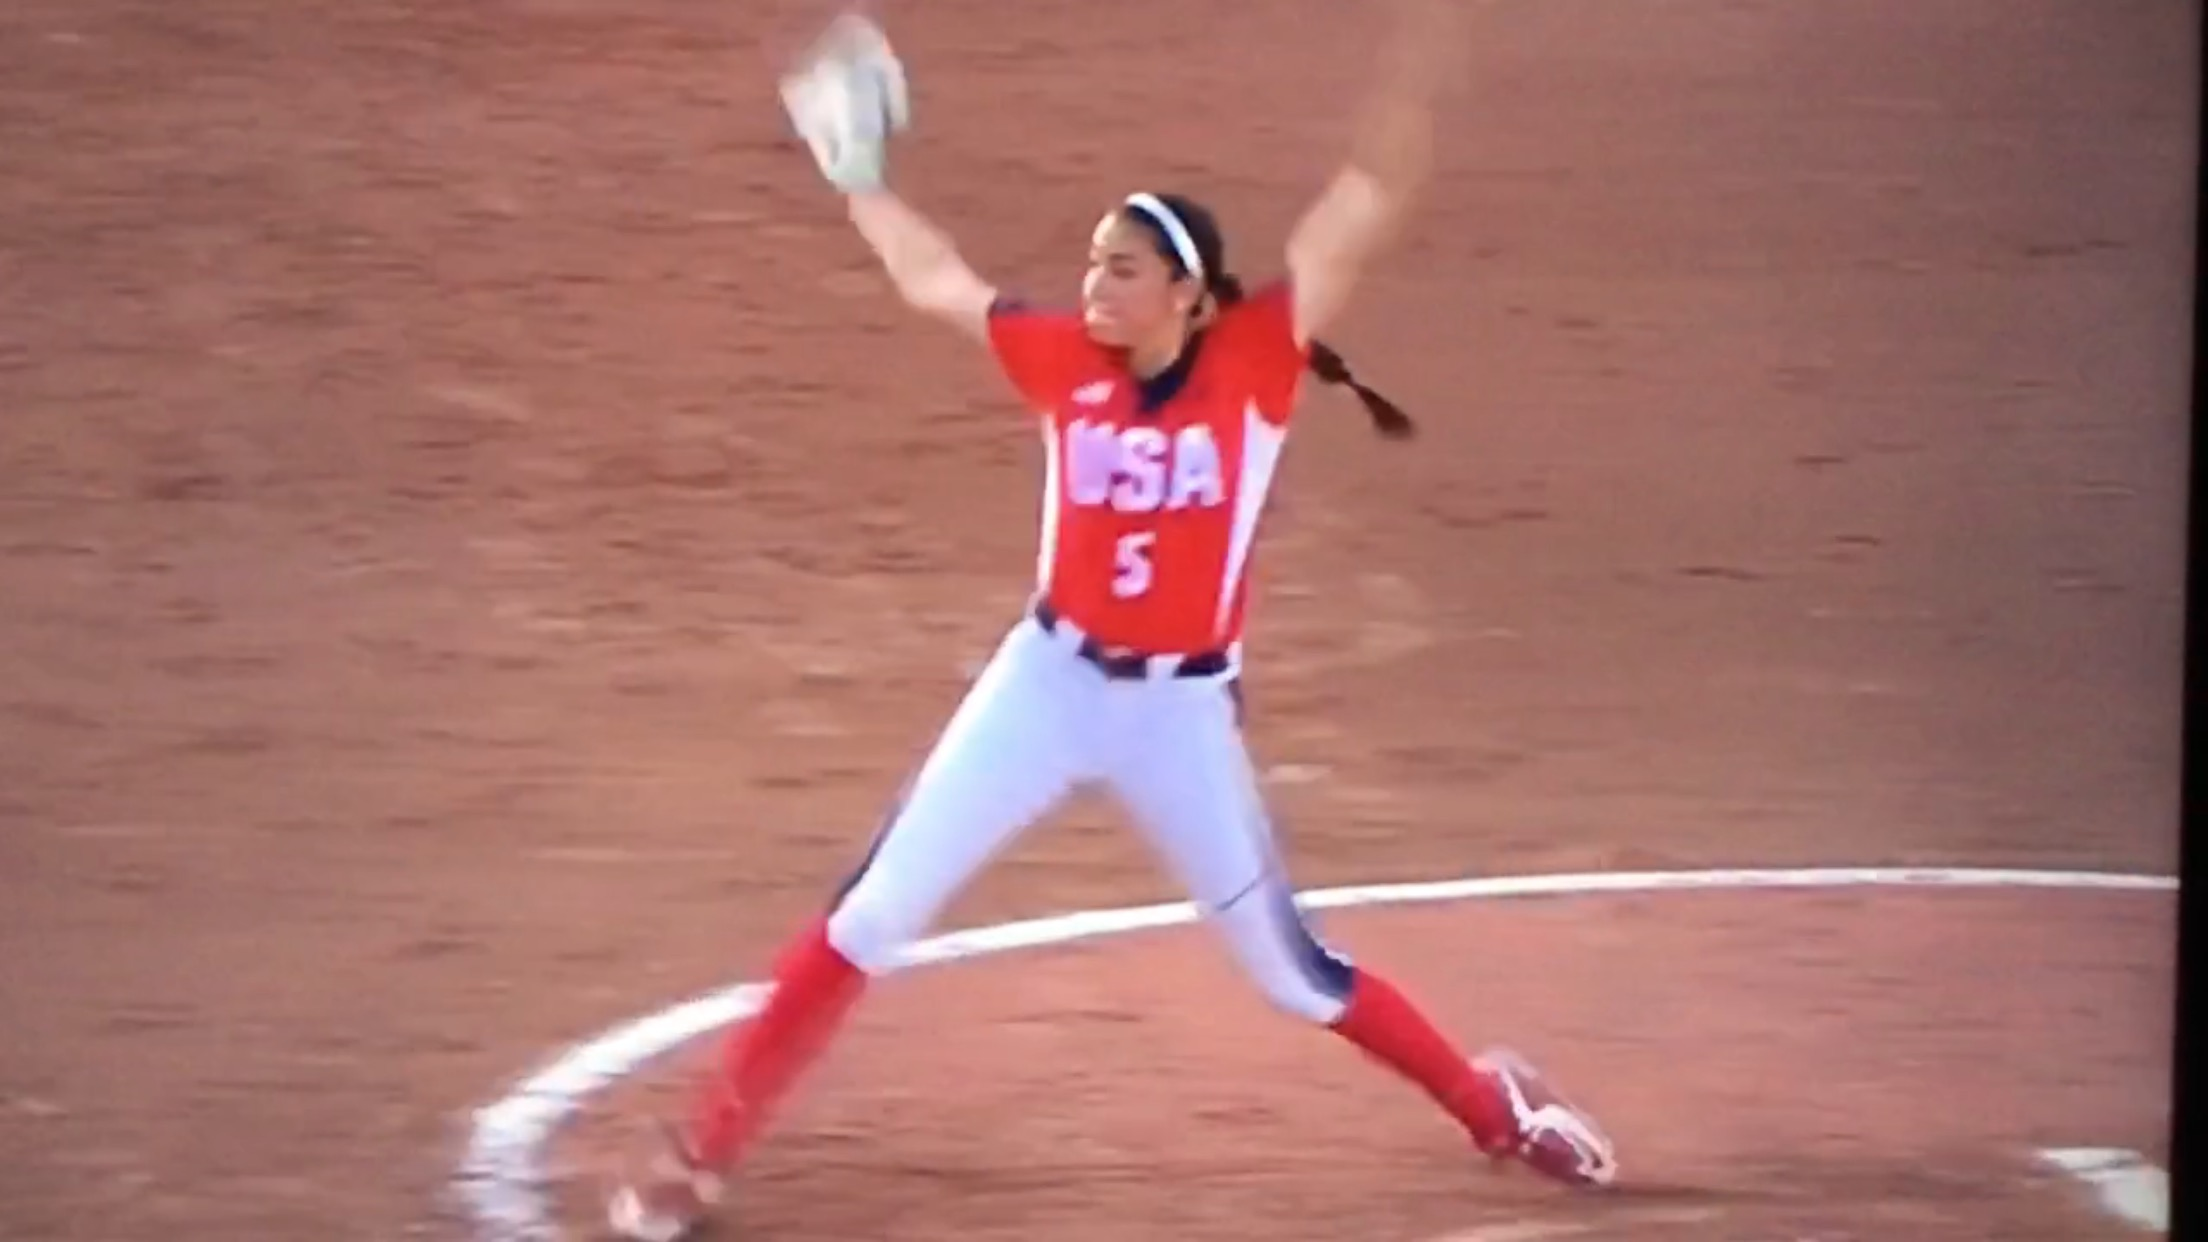 Danielle O'Toole, softball pitcher for USA